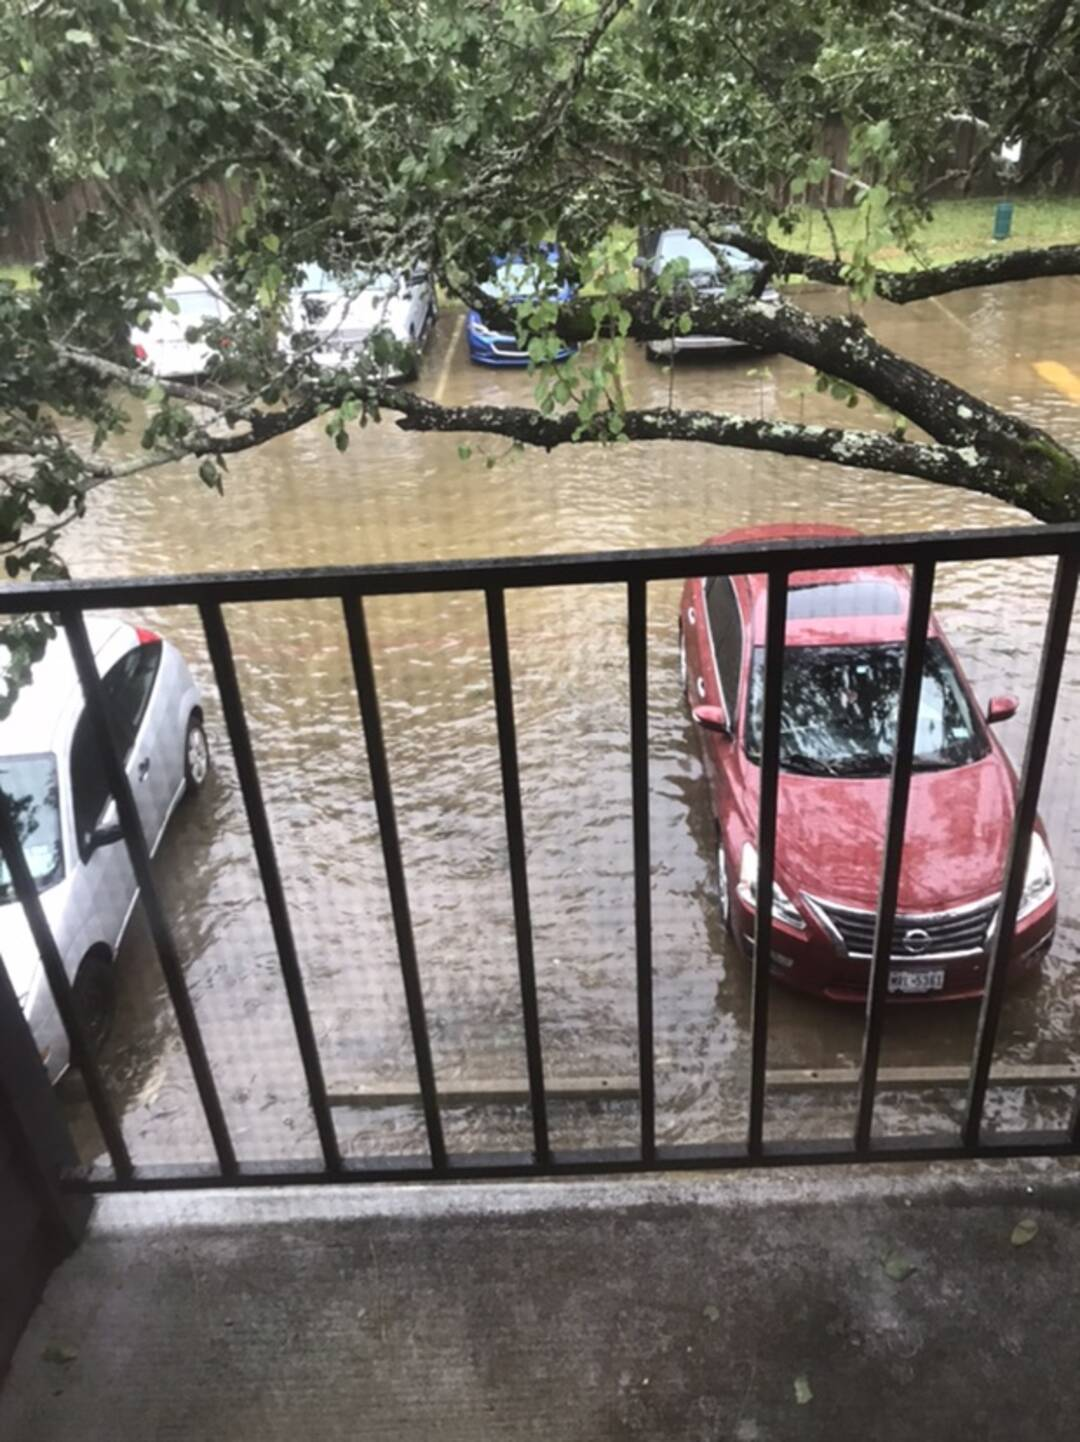 Apartment complex outside my window in texas city